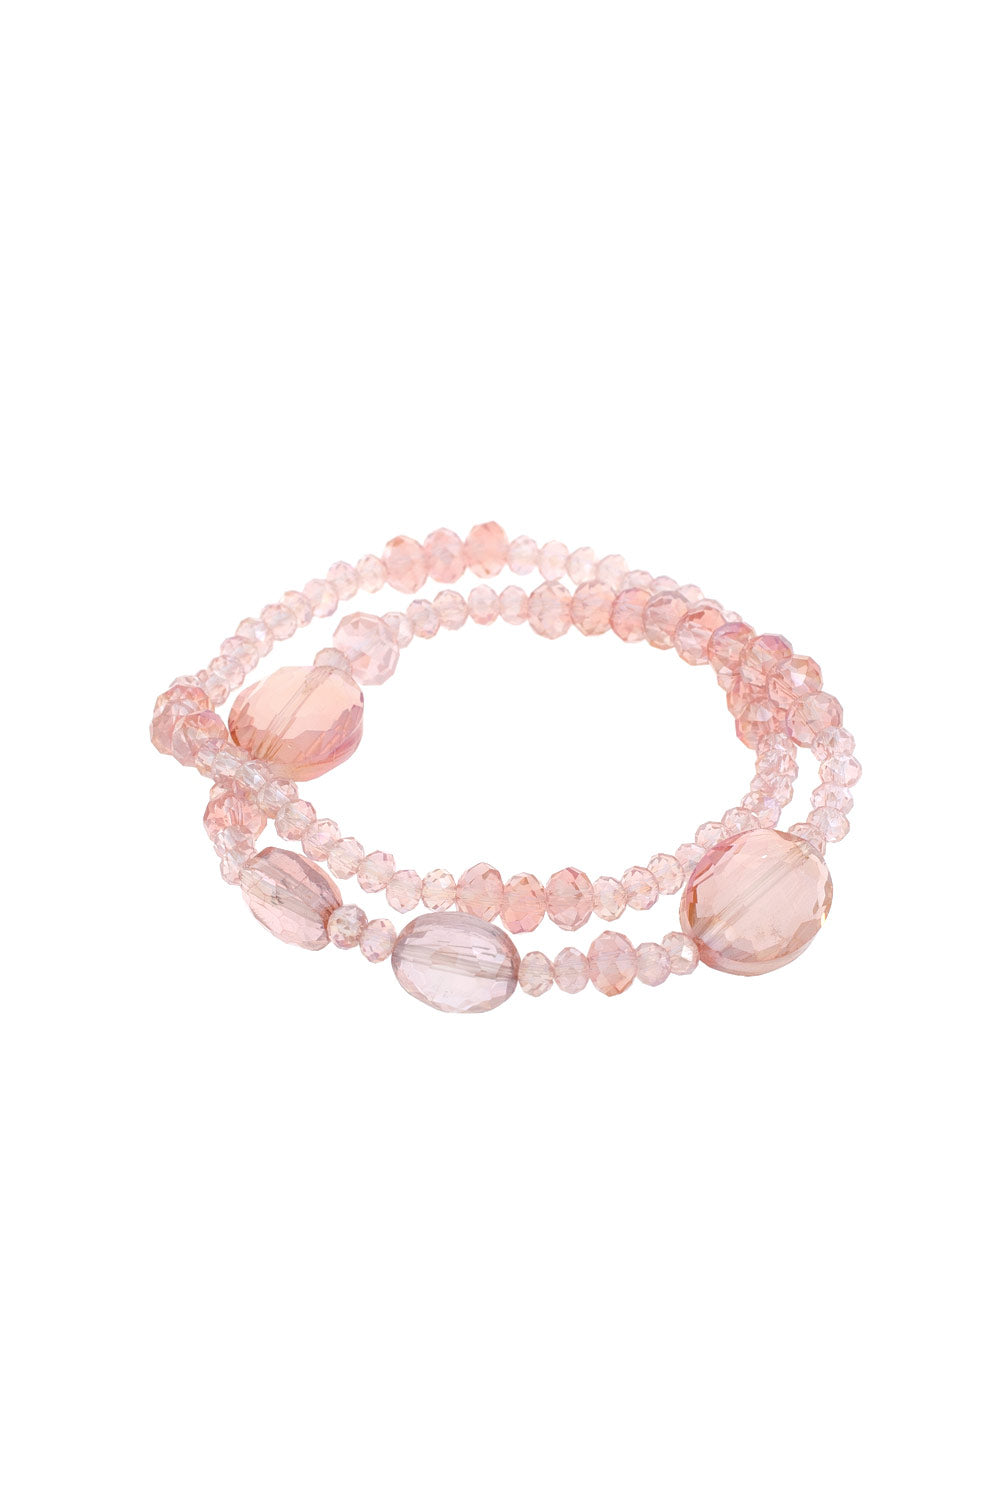 Type 2 Glittering Grace Bracelet in Pink